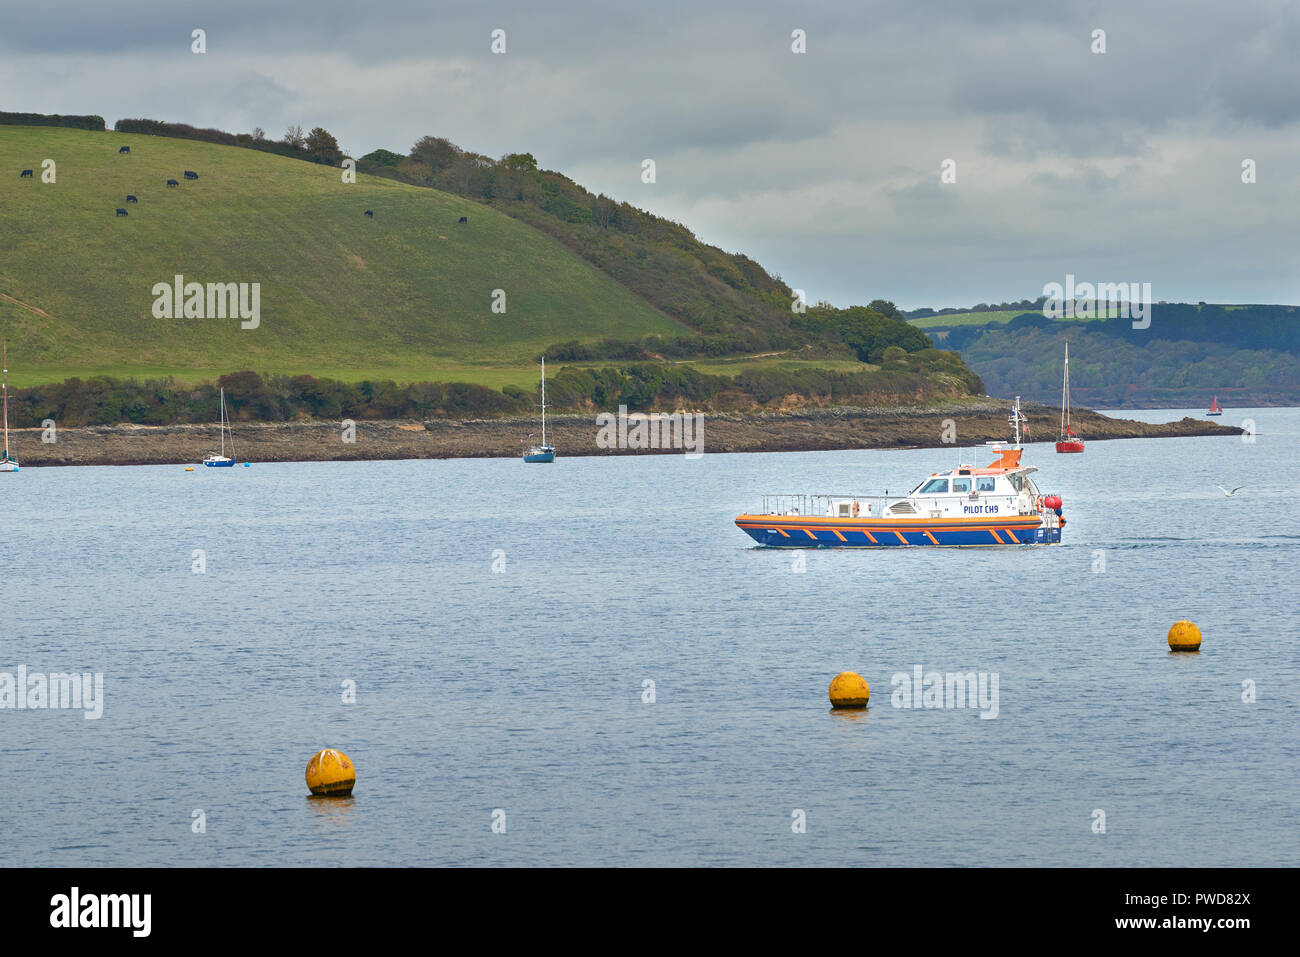 A pilot boat from Falmouth leaves the English channel to enter the river Fal at Carrick Roads, with the Roseland peninsula in the background. - Stock Image